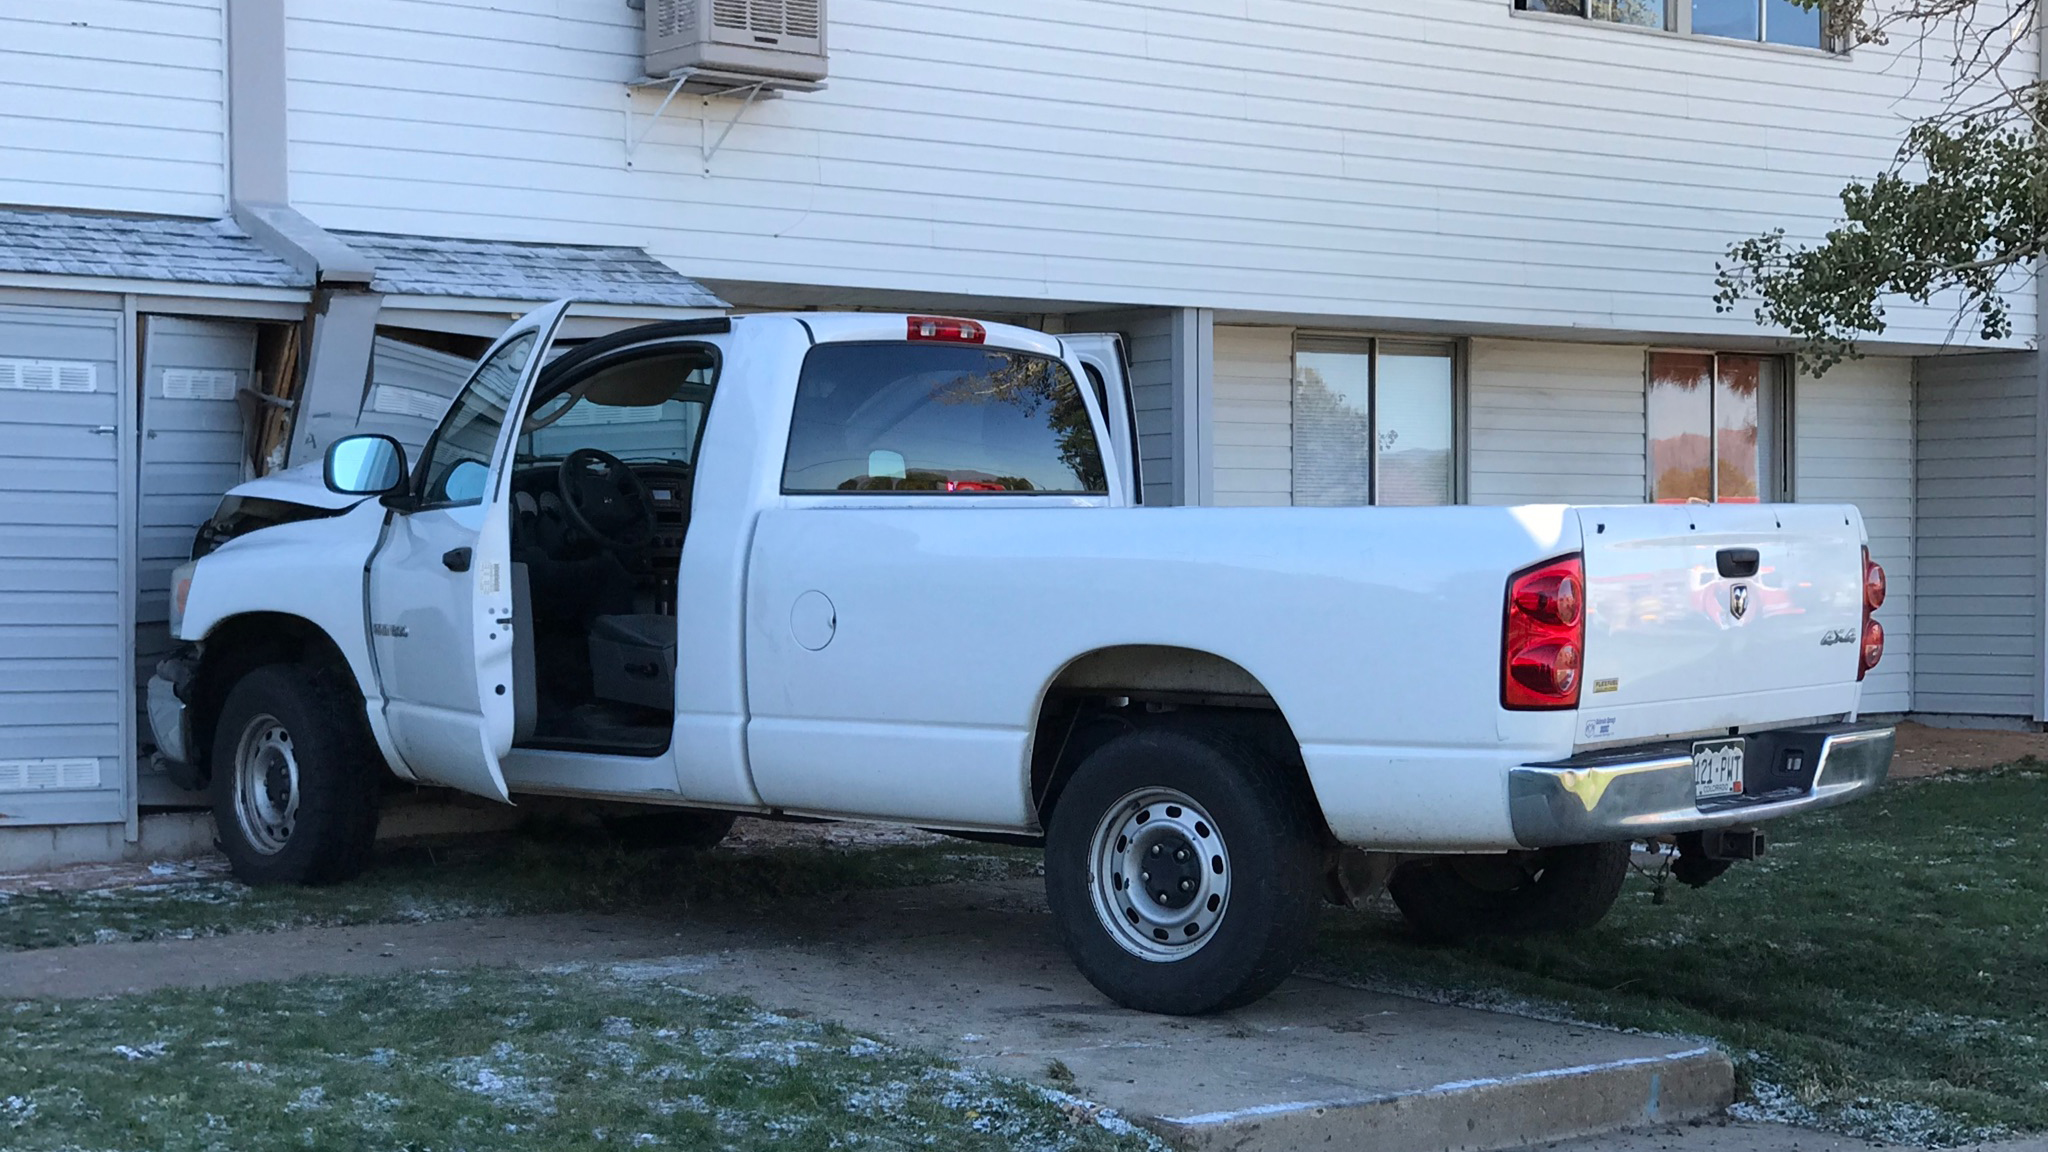 A pickup truck crashed into a building at the Murray Hill Apartments in eastern Colorado Springs Monday morning. Shawn Shanle - FOX21 News